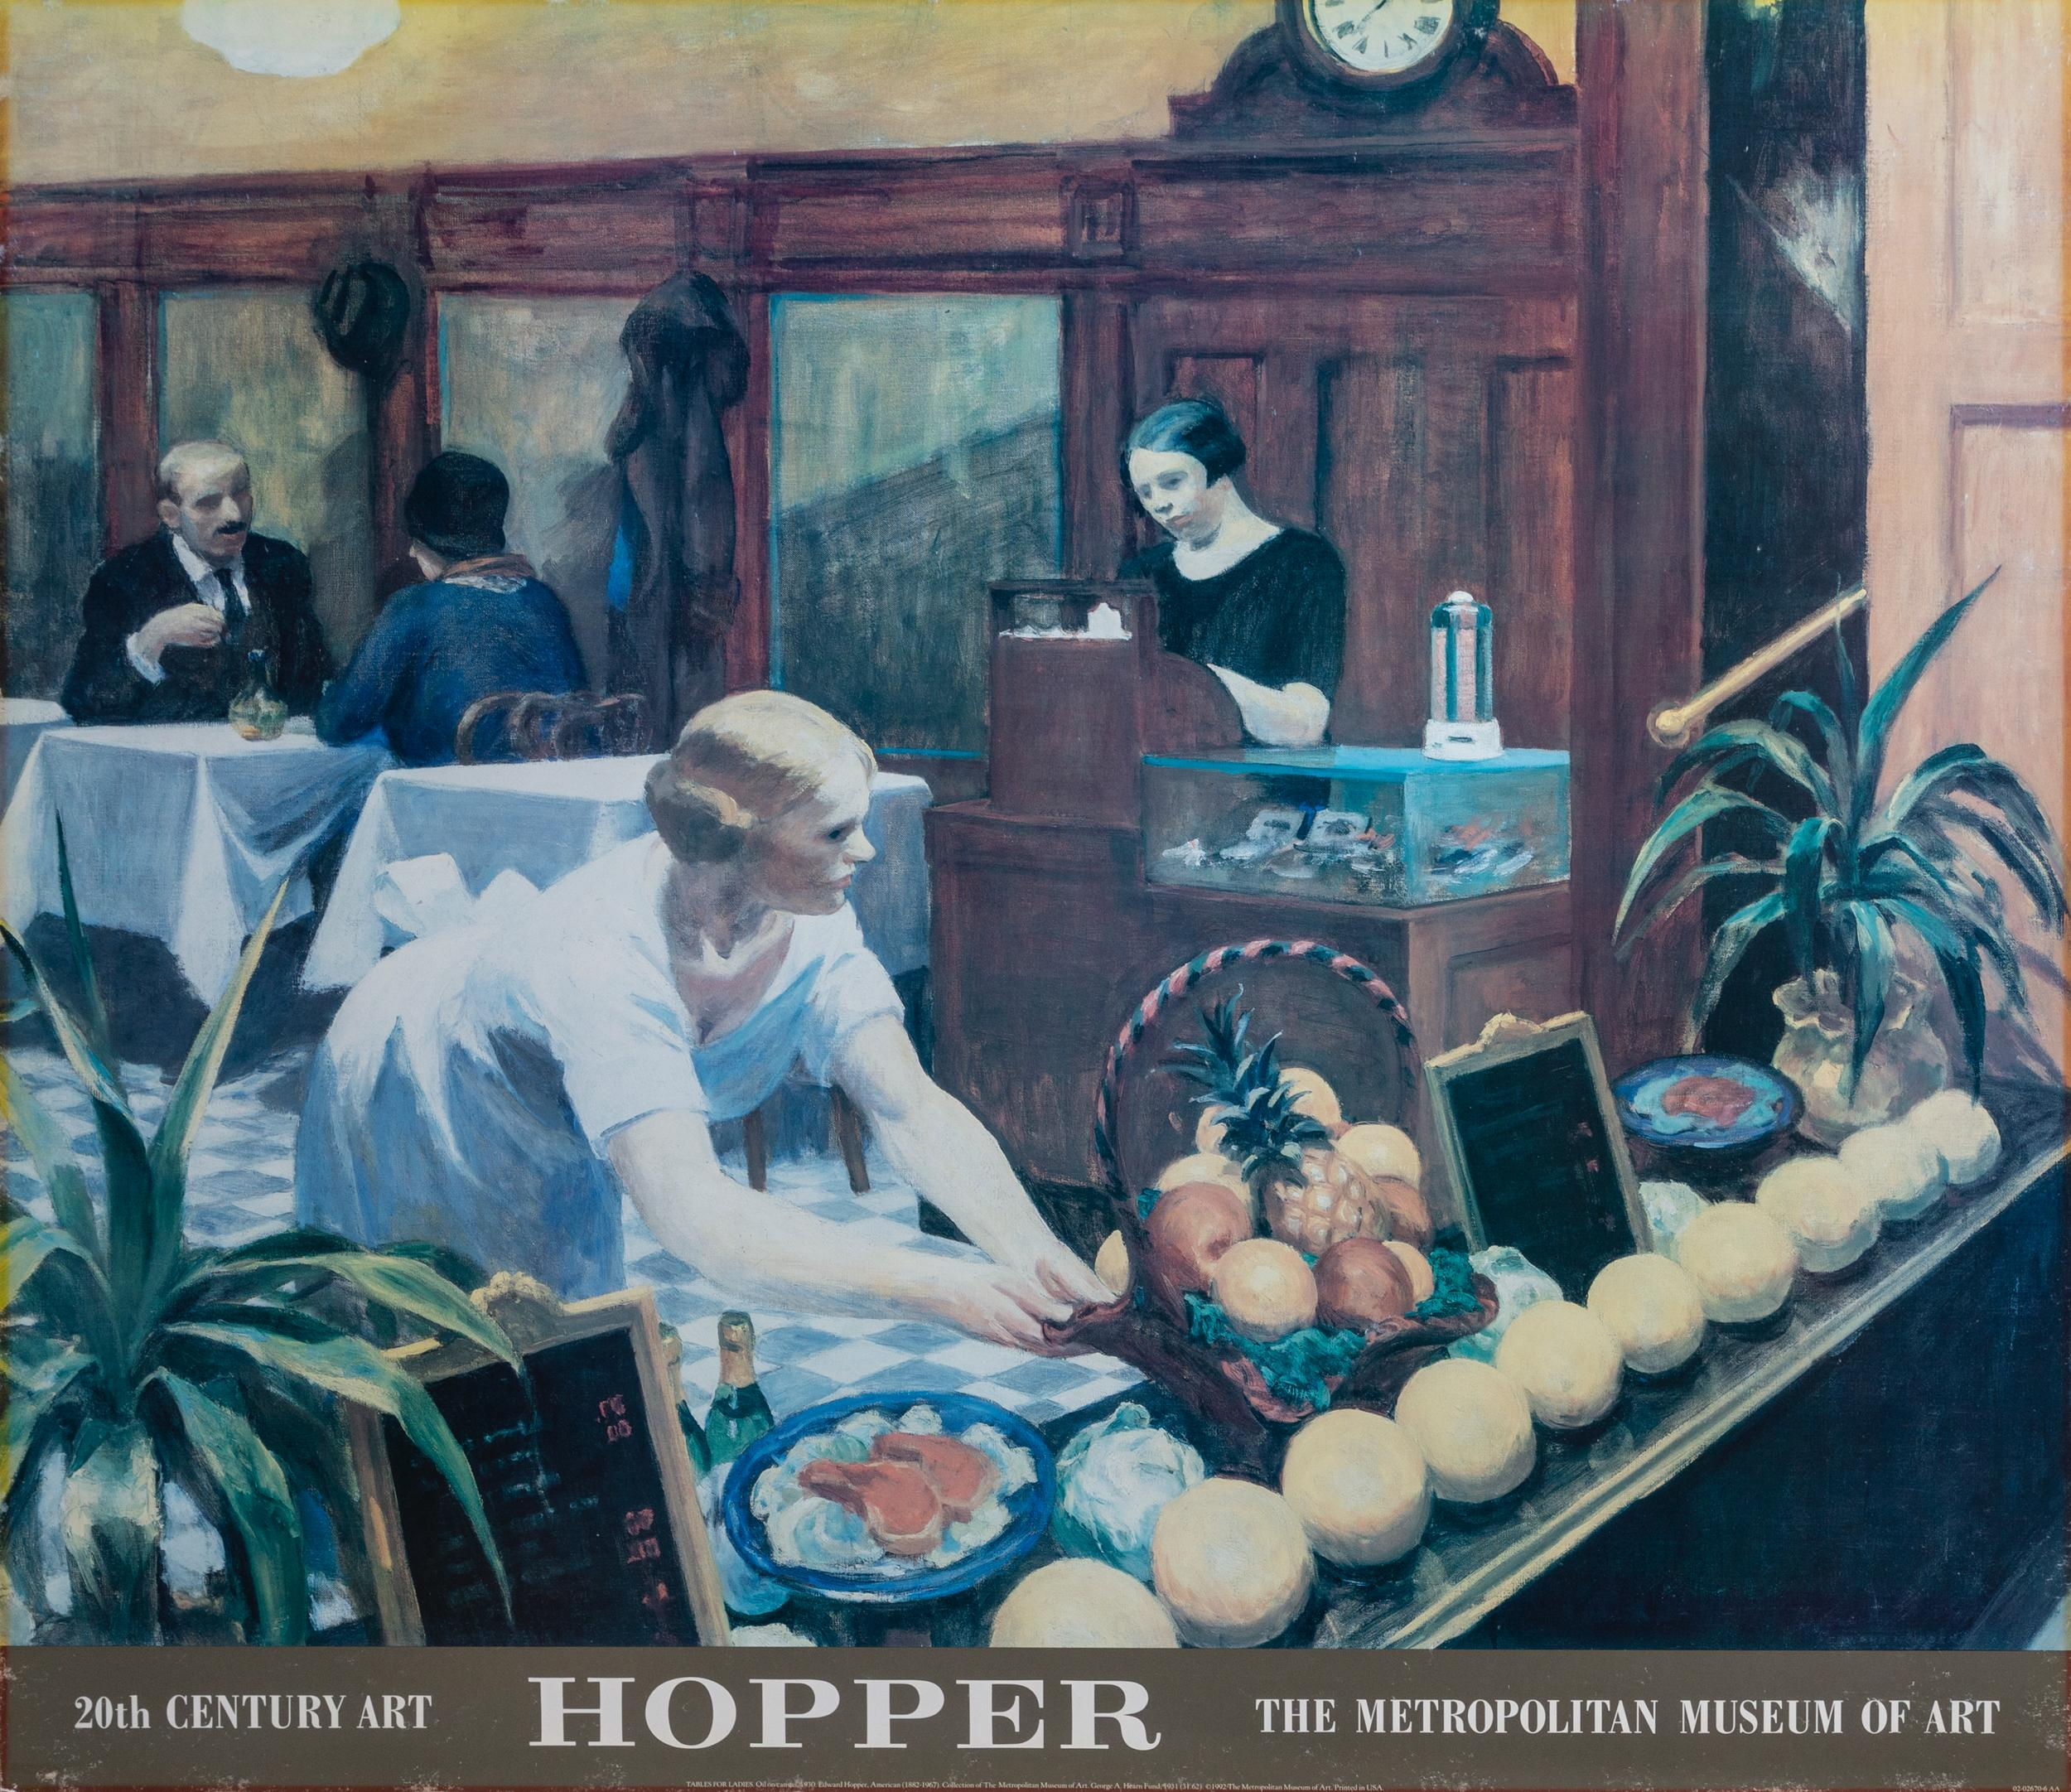 Edward Hopper, The Metropolitan Museum of Art - Tables for Ladies, Poster on foamcore